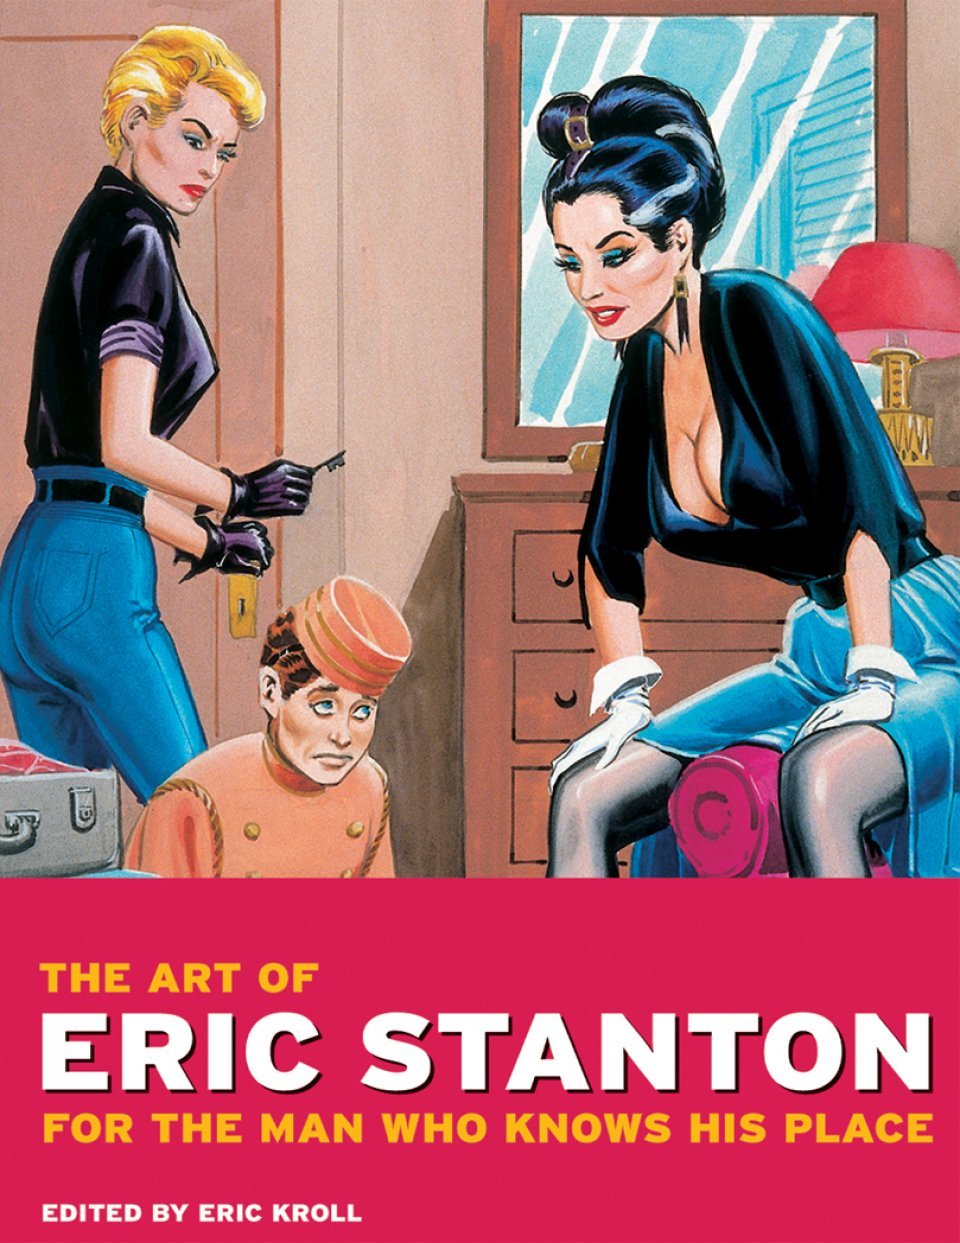 The Art of Eric Stanton. For the man who knows his place. TASCHEN Books